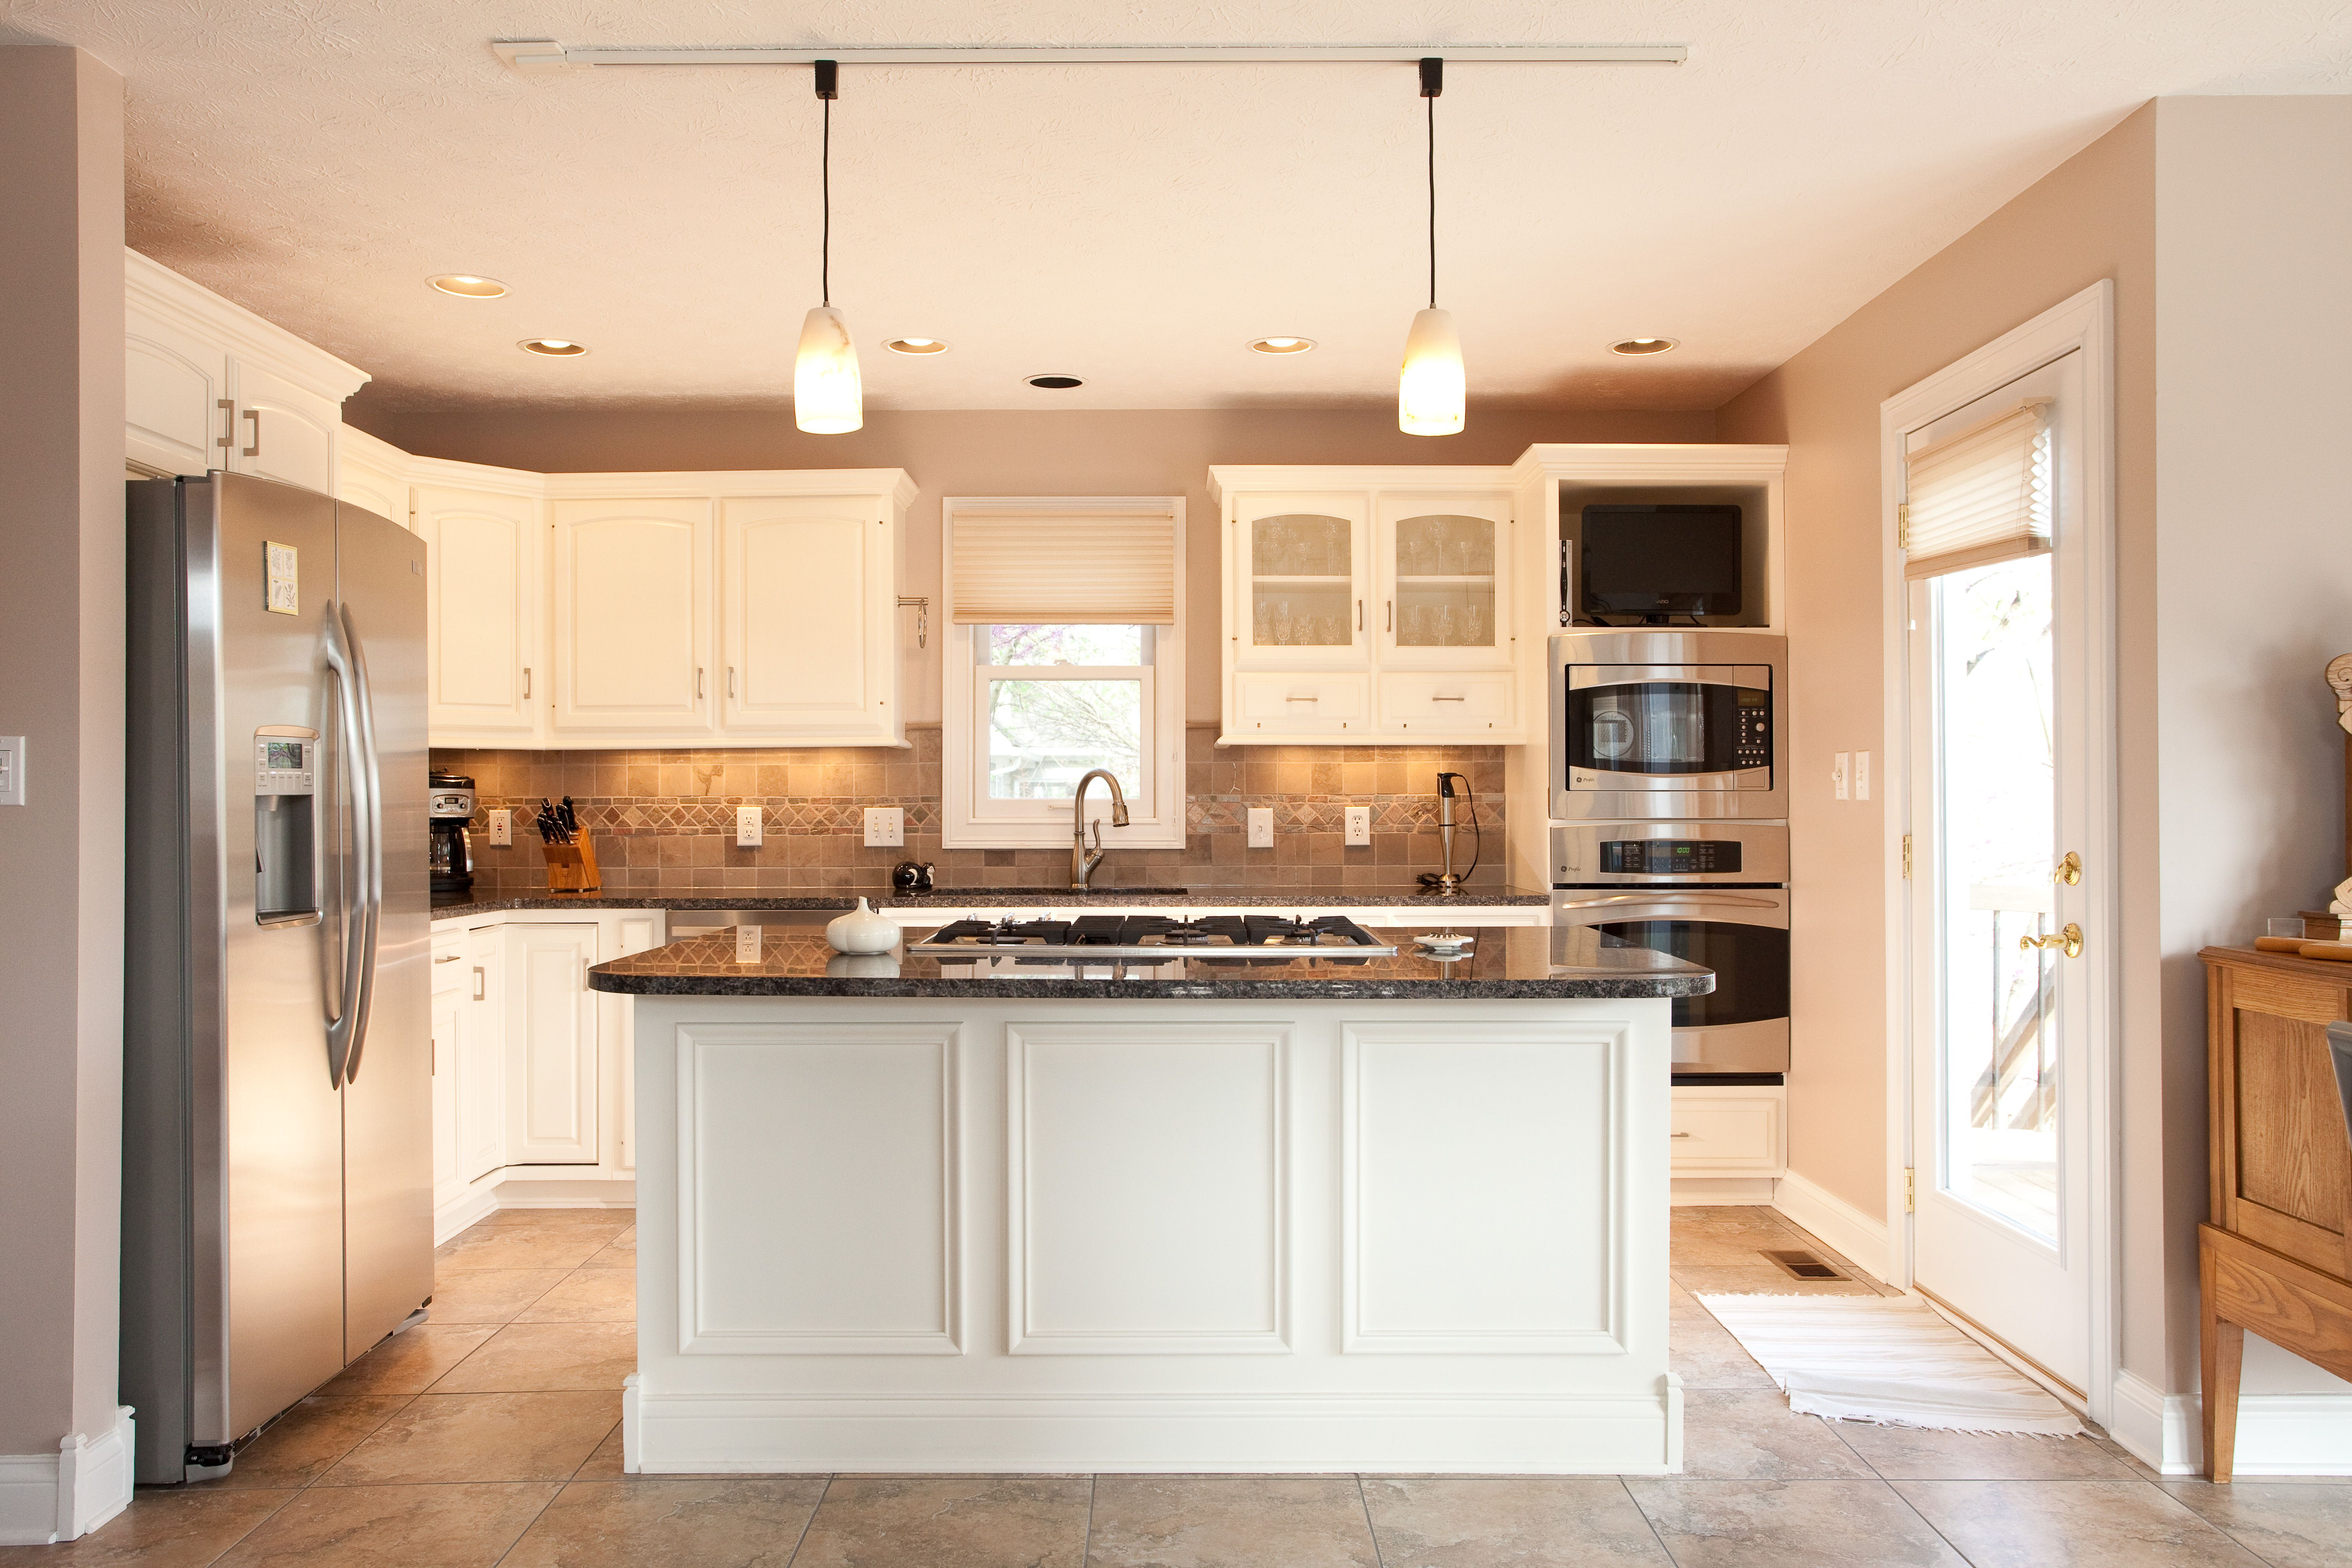 Depiction Of Cabinets To Go Reviews Cabinets To Go Kitchen Remodel Online Kitchen Cabinets